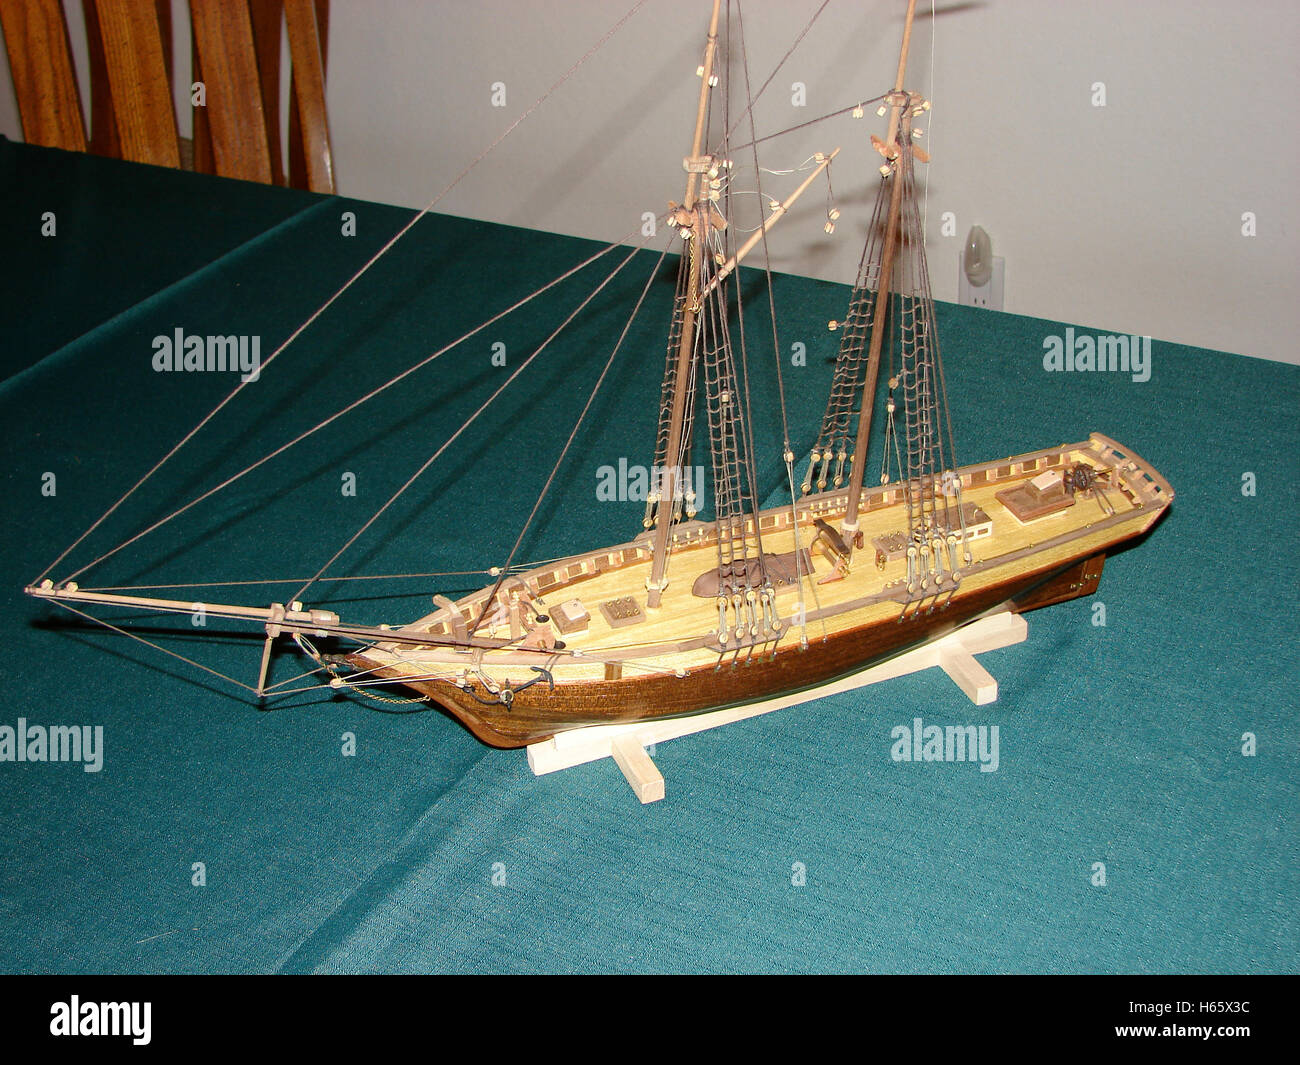 Wooden model ship fully rigged but without sails - Stock Image